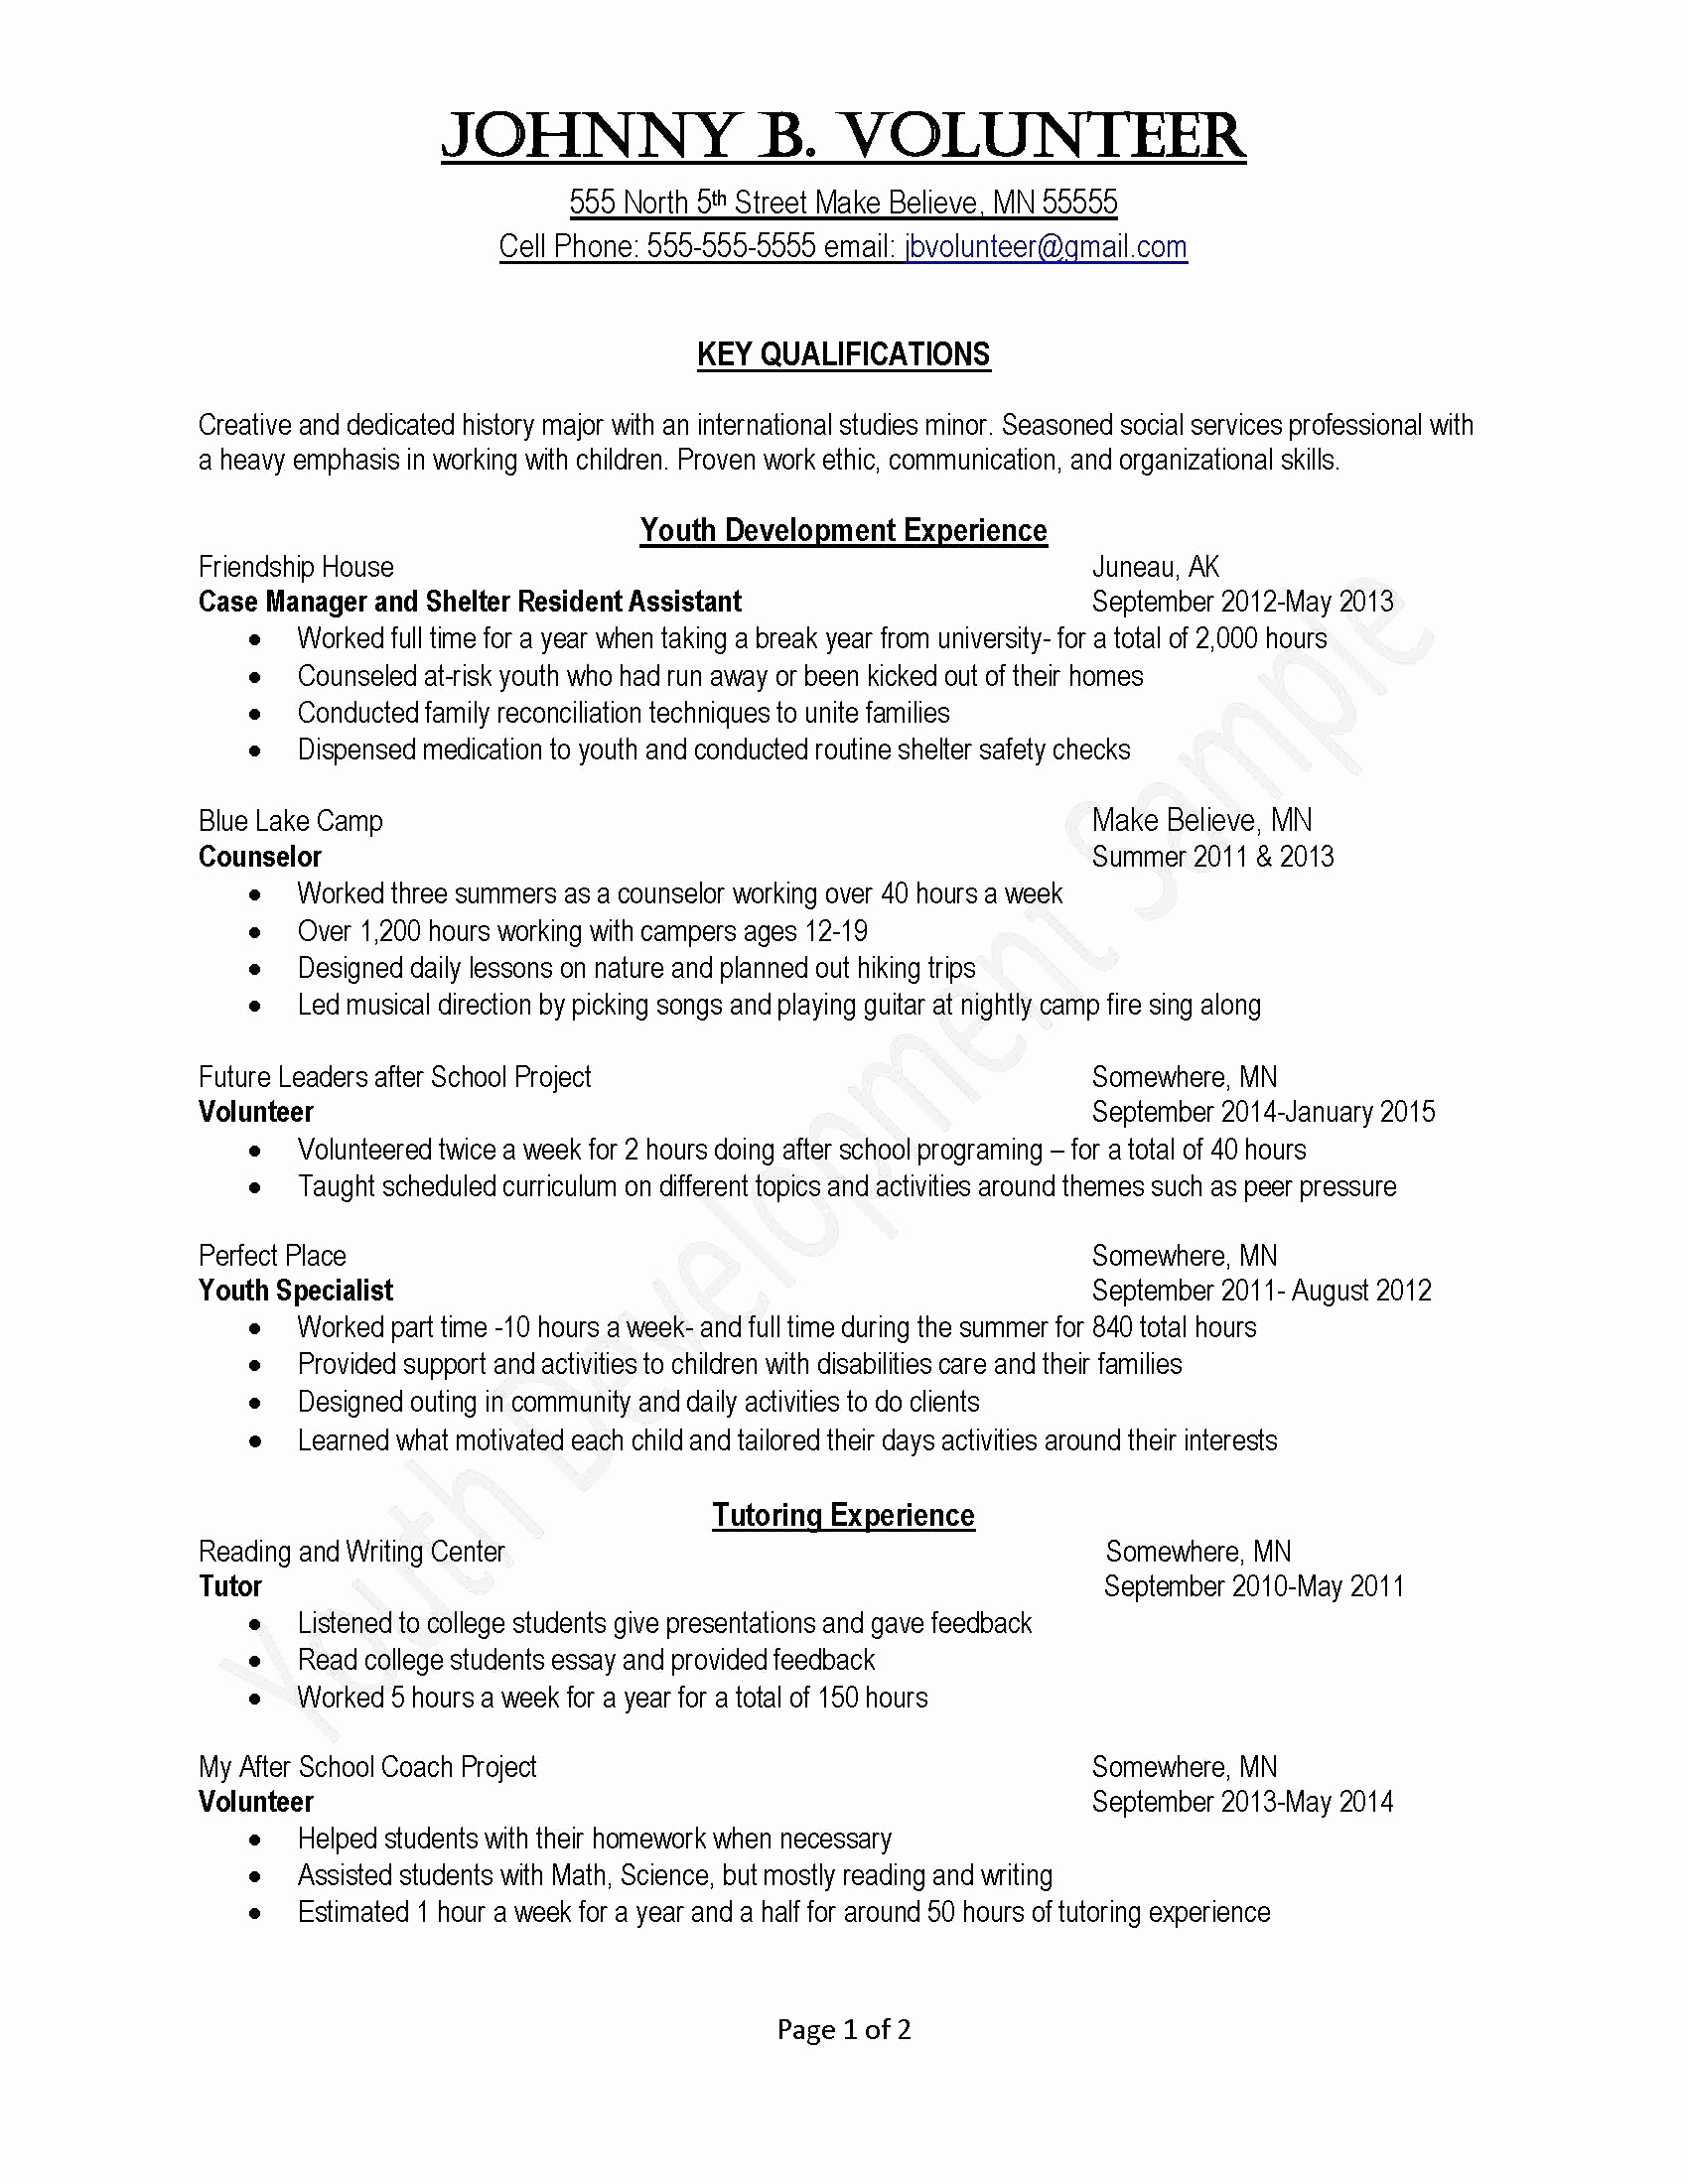 Cover Letter Template No Experience - Good Cover Letters for Jobs Unique Simple Cover Letter Template